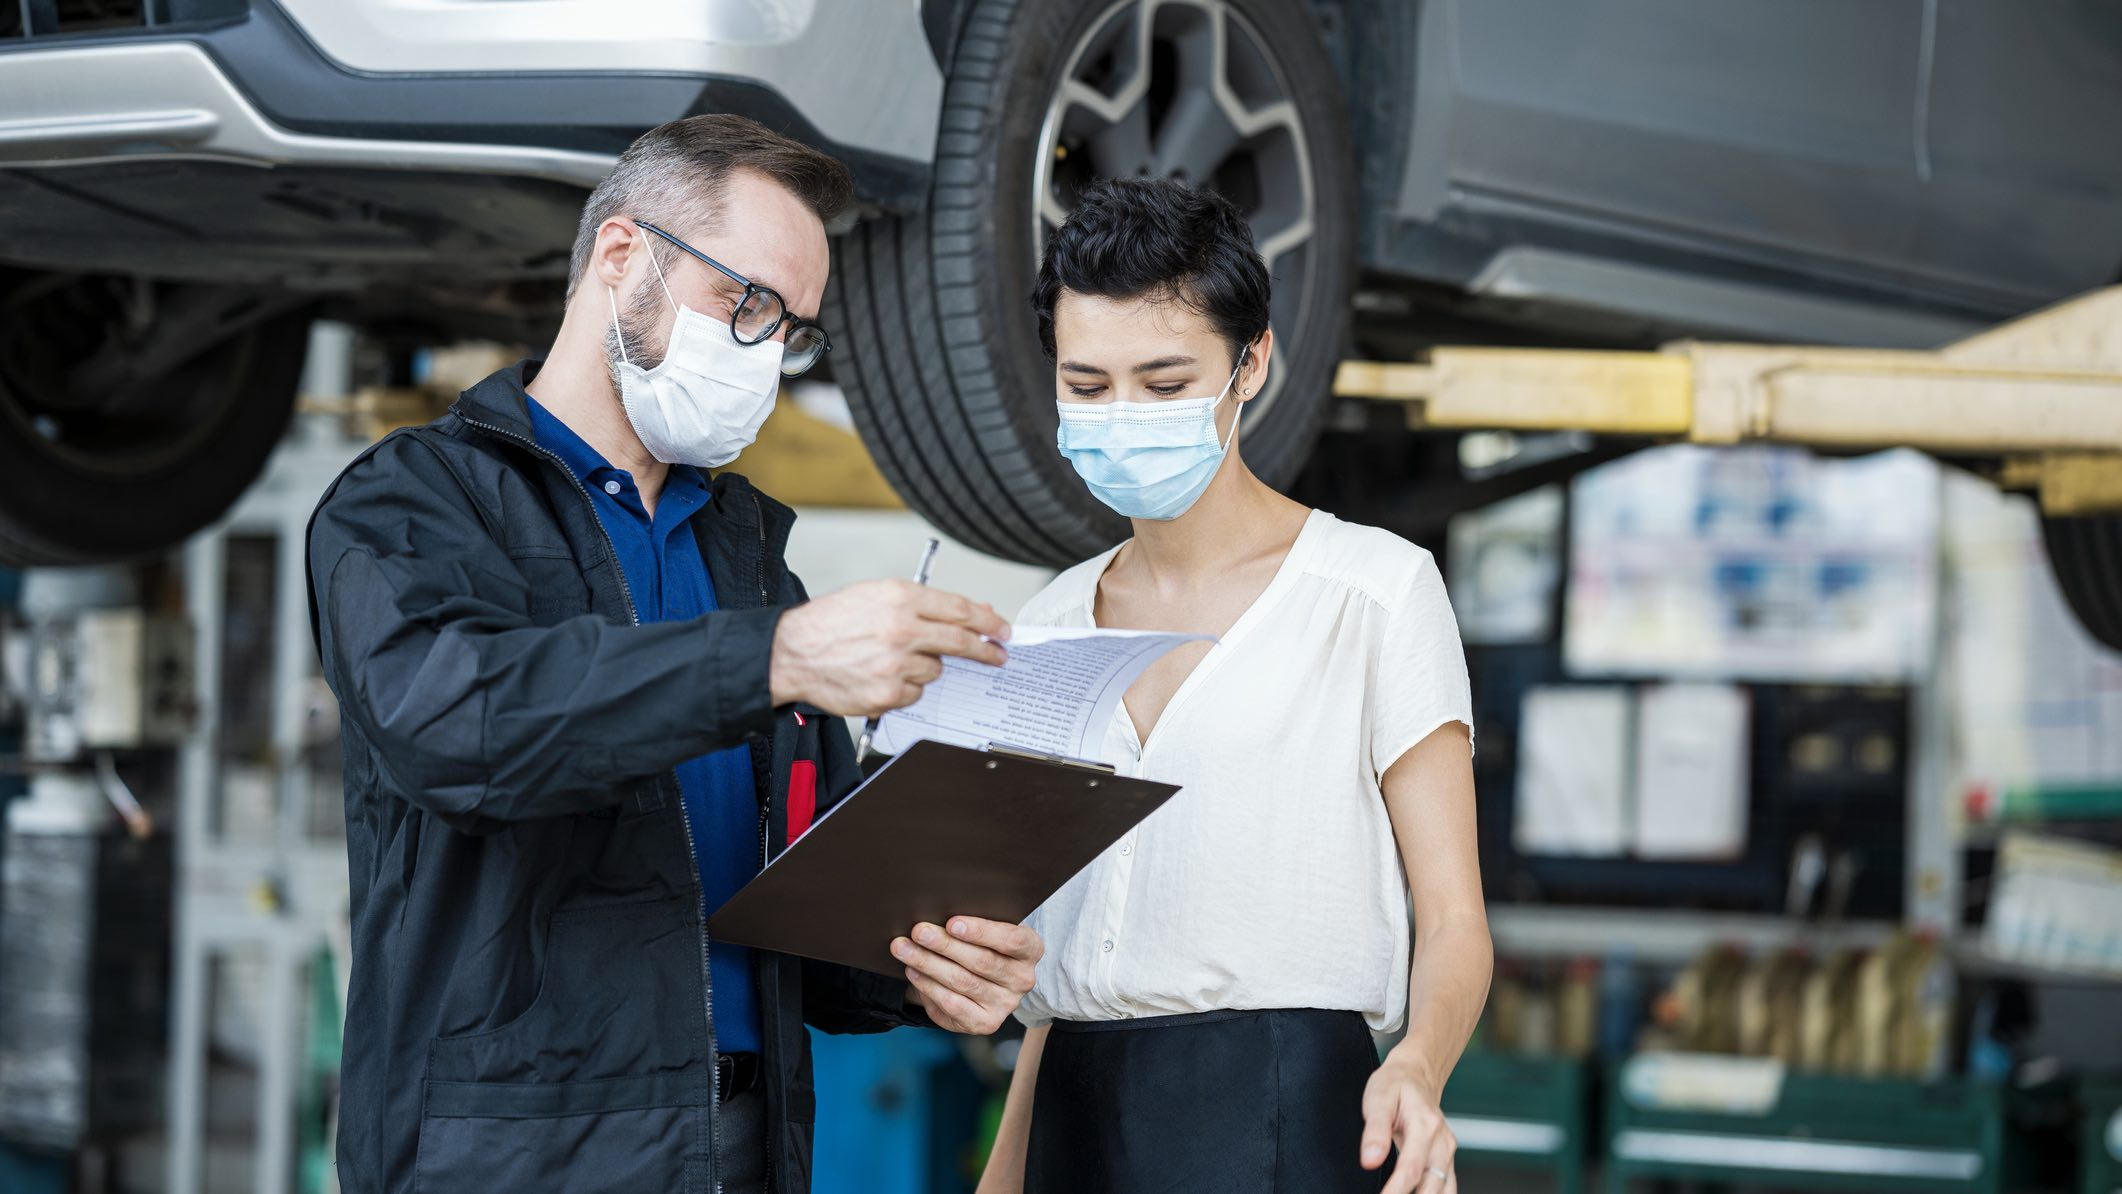 People in medical face masks looking at rising car insurance costs in front of a vehicle getting repairs.